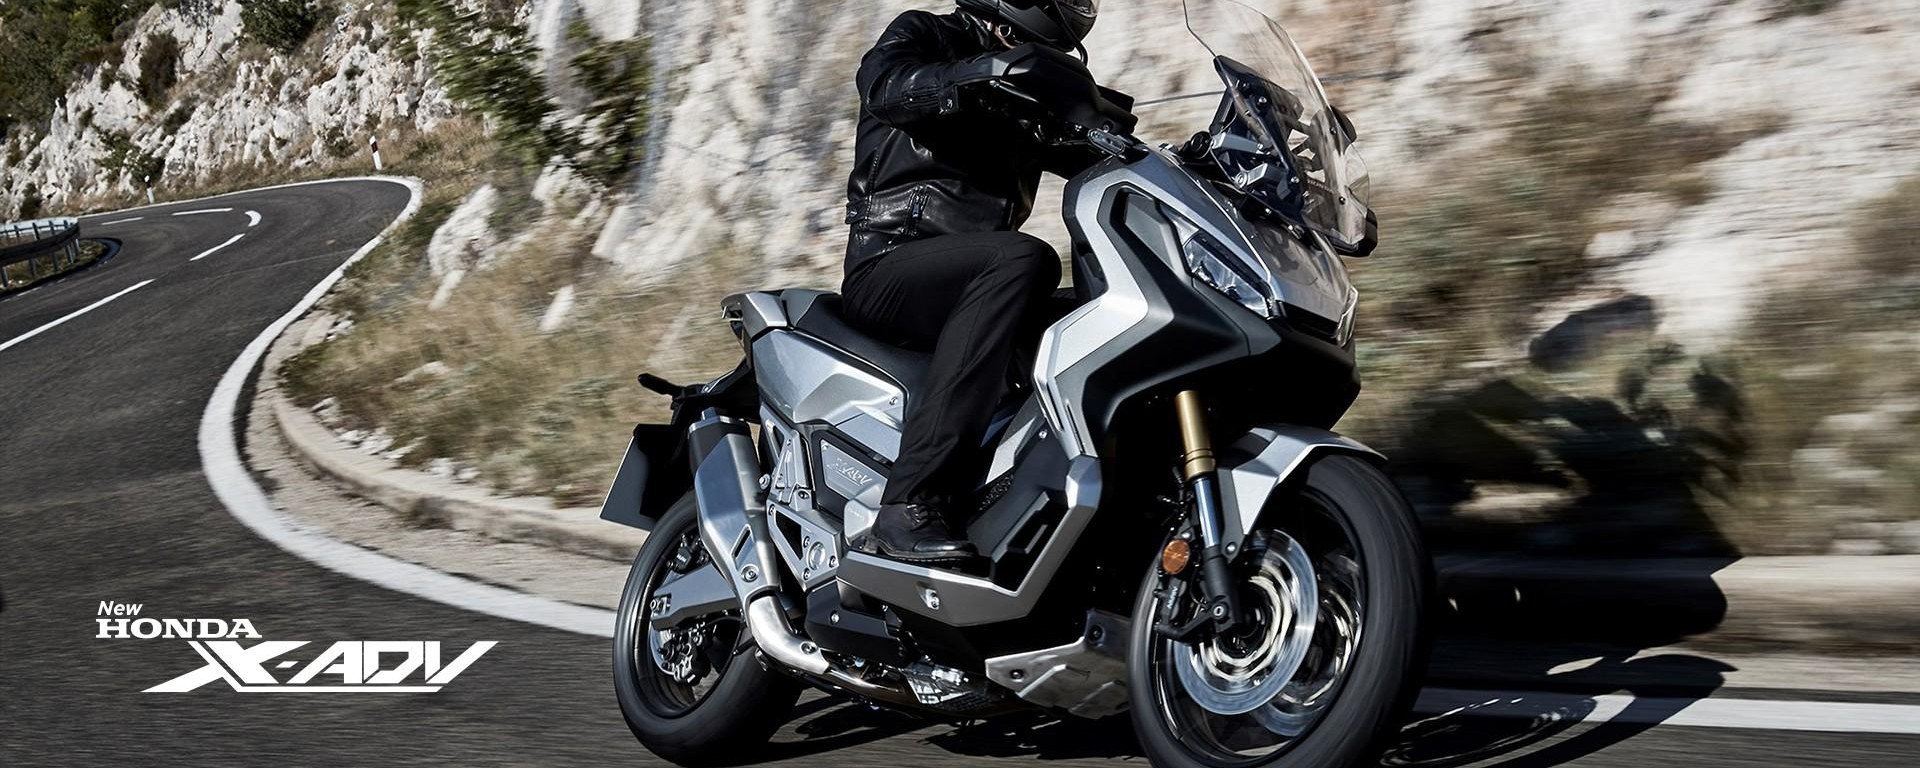 https://www.aphonda.co.th/hondabigbike/cache-image/fit/home_banner/laravel-filemanager/photos/shares/Product_Banners/Adventure/Honda_X-ADV.jpg